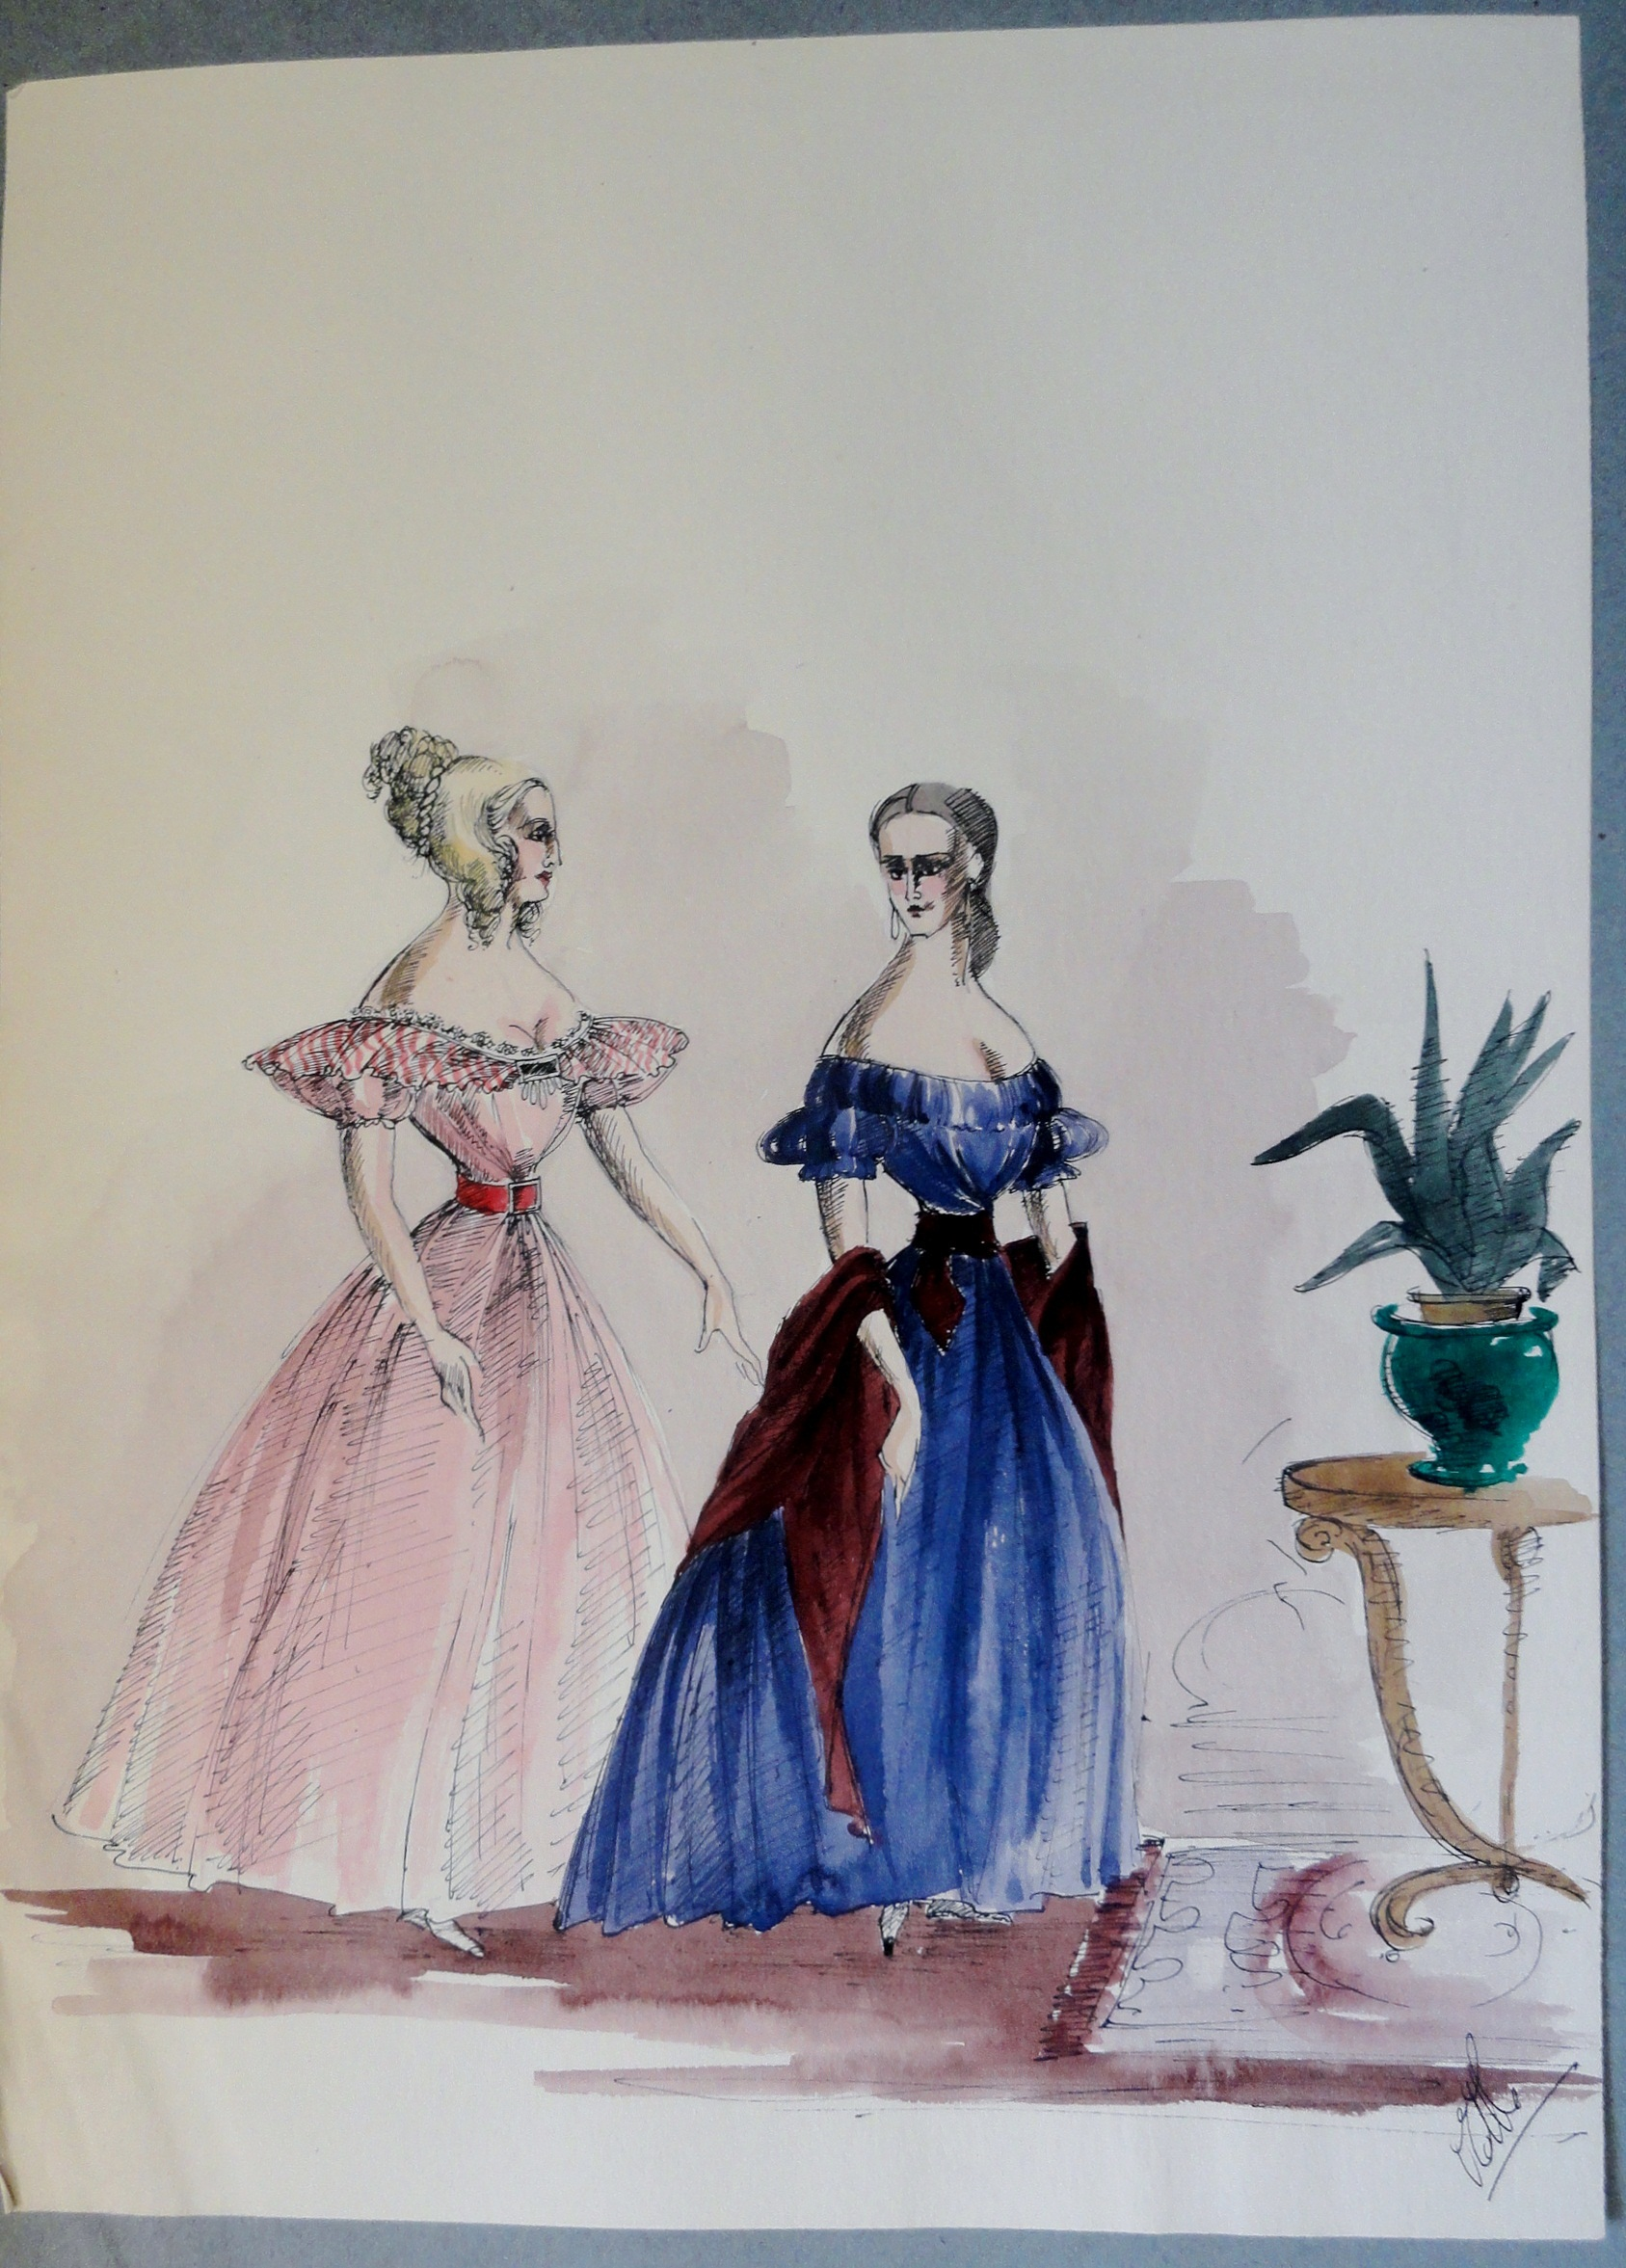 Rachel and sister in pink and blue gowns. Pen and Ink and Watercolor. From the Rachel Portfolio by Owen Hyde Clark. $150.00.